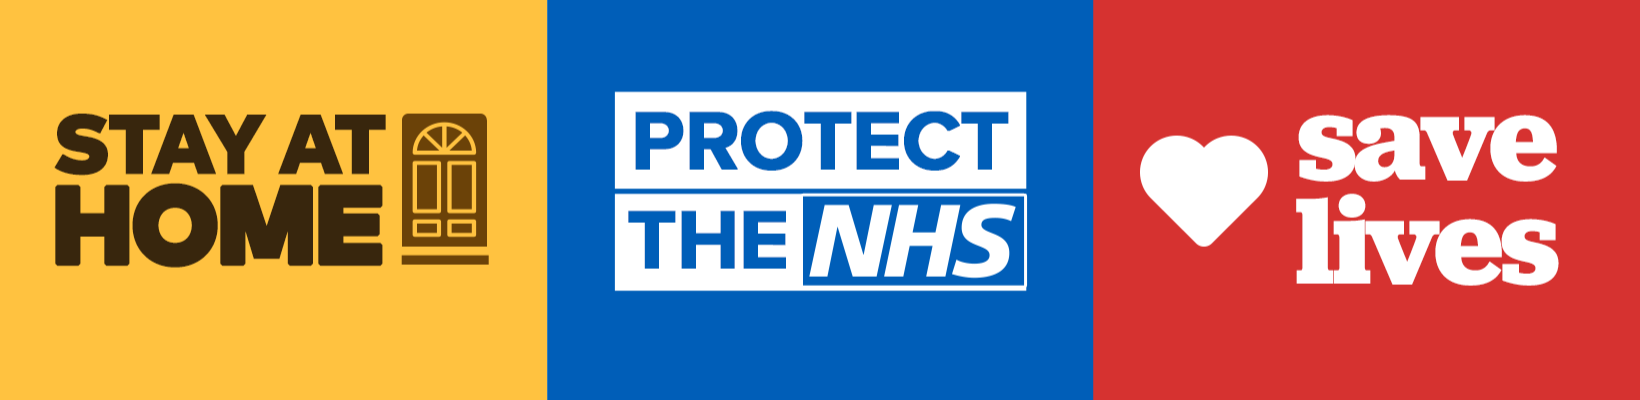 stay-home-protect-the-nhs-save-lives